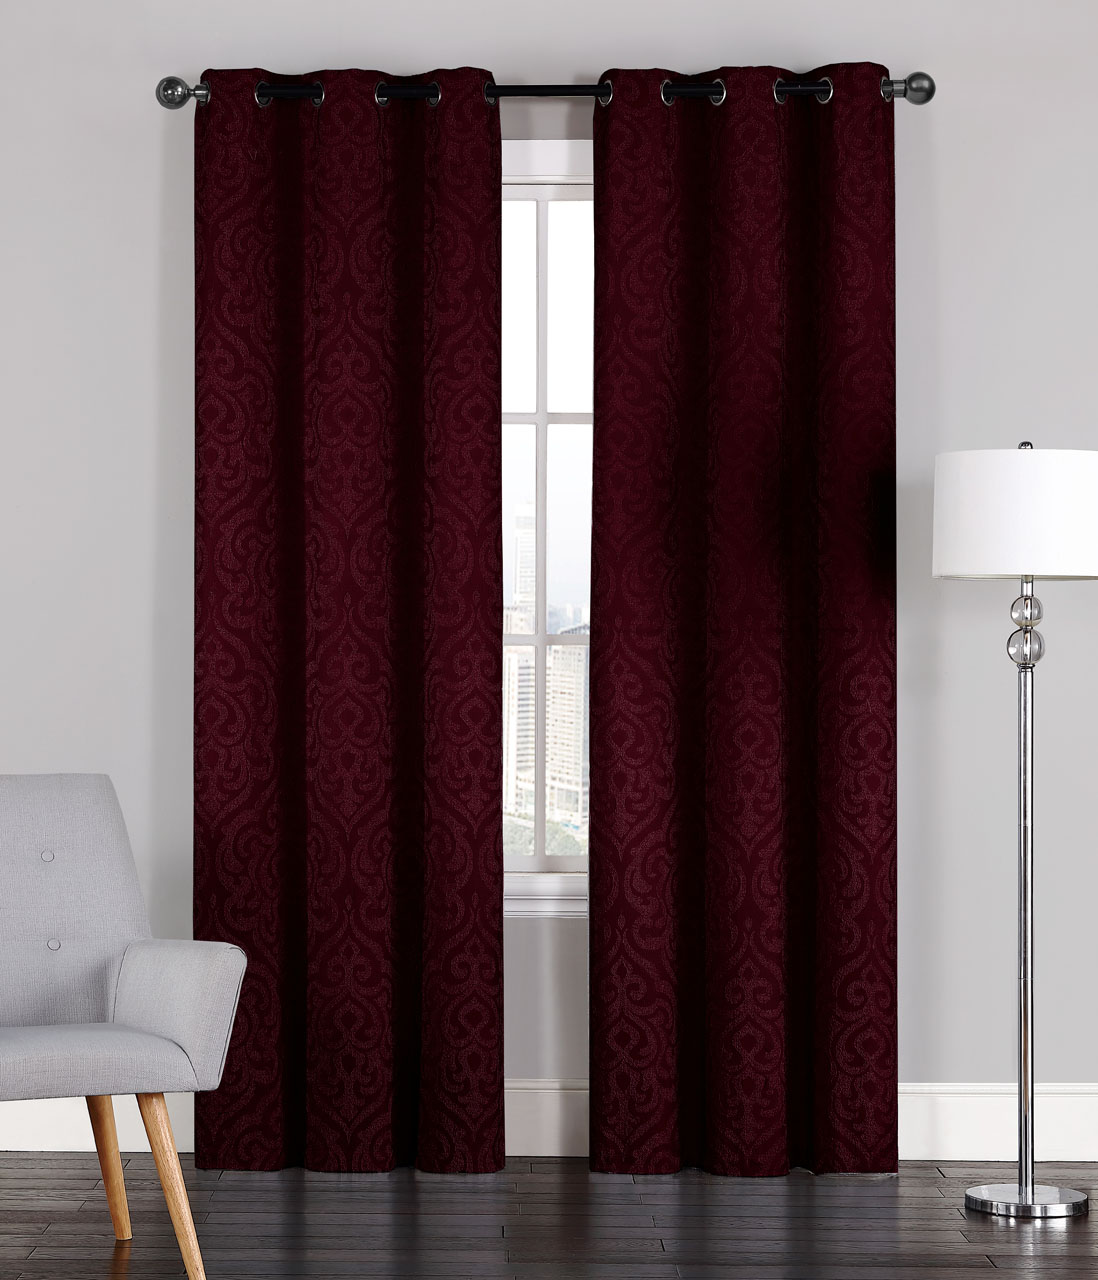 Pair Of Adelaide Crinkled Burgundy Window Curtain Panels W Grommets 96